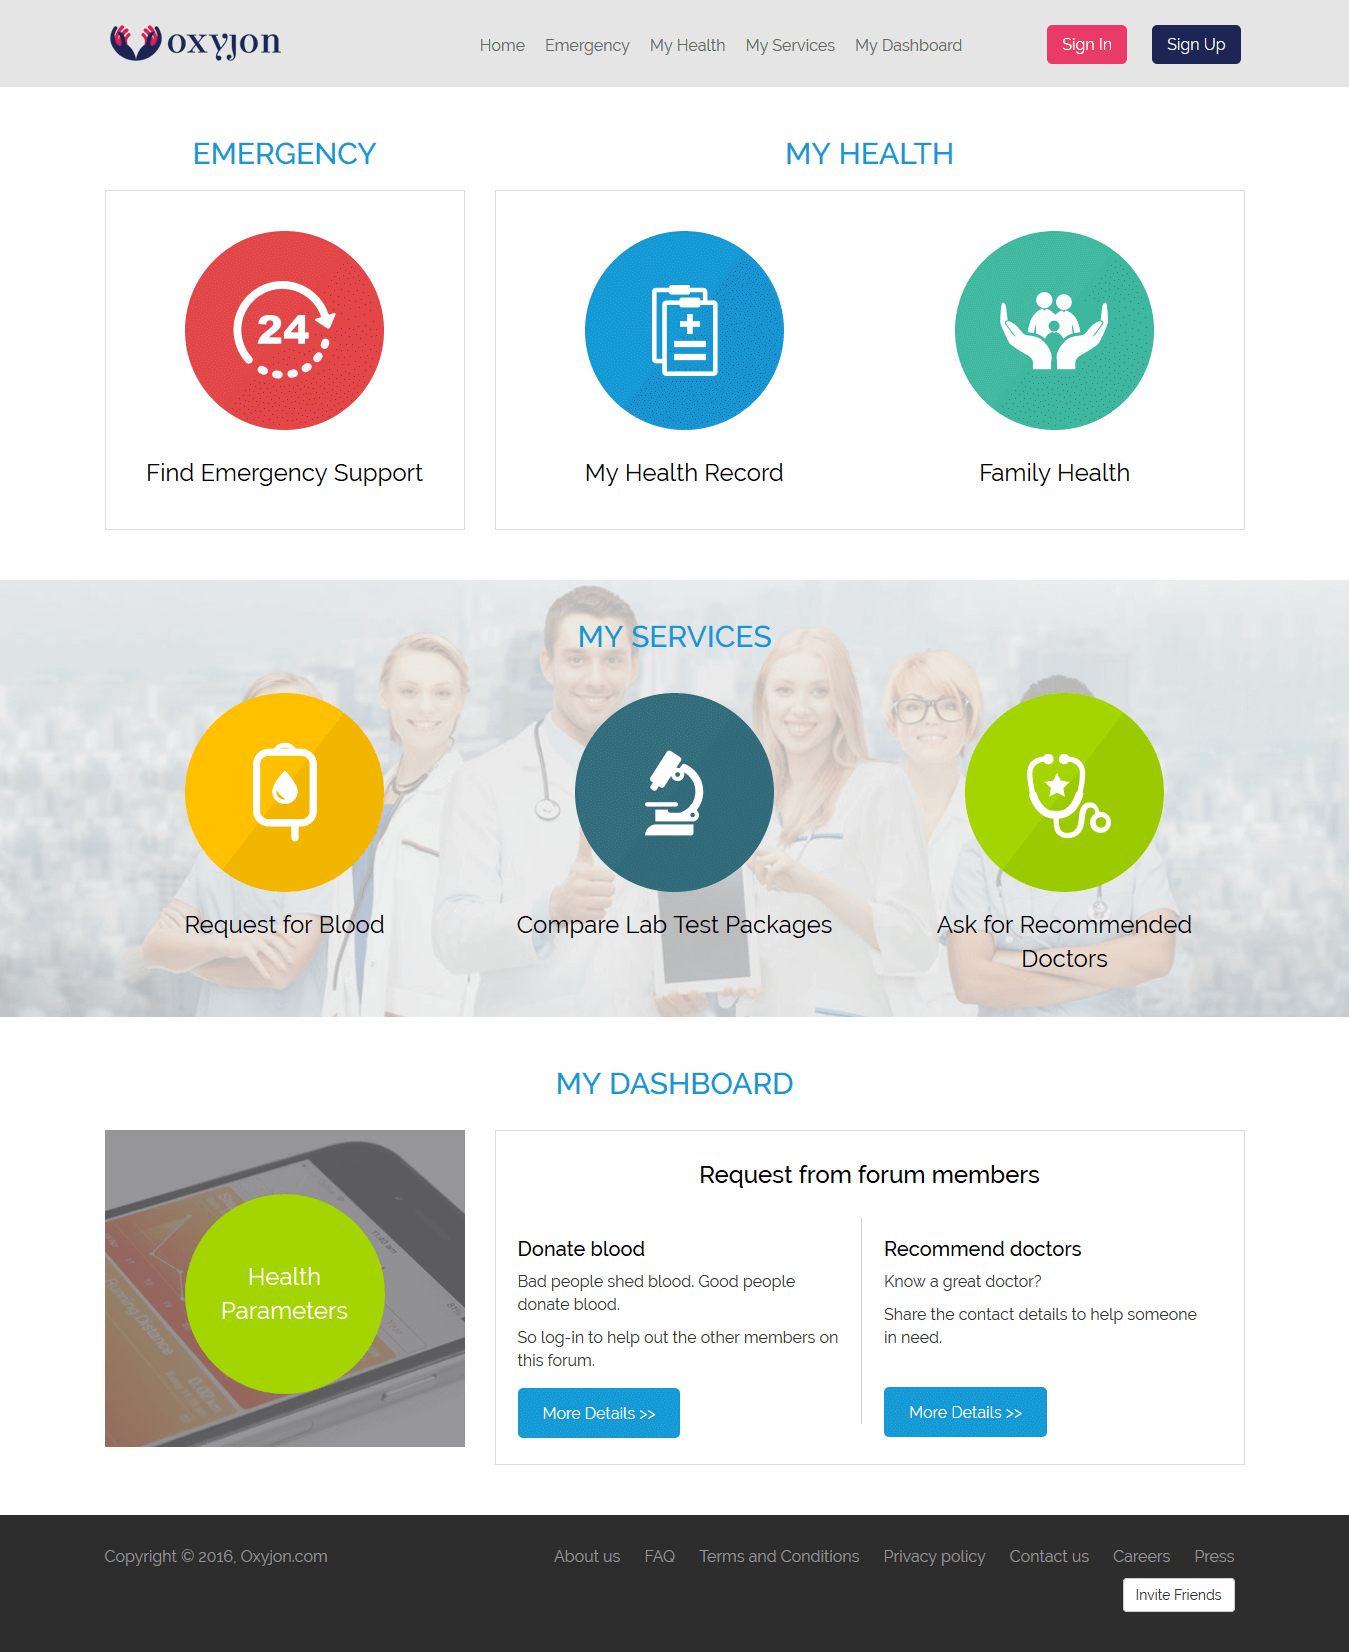 A CakePHP Based Website for Healthcare Services